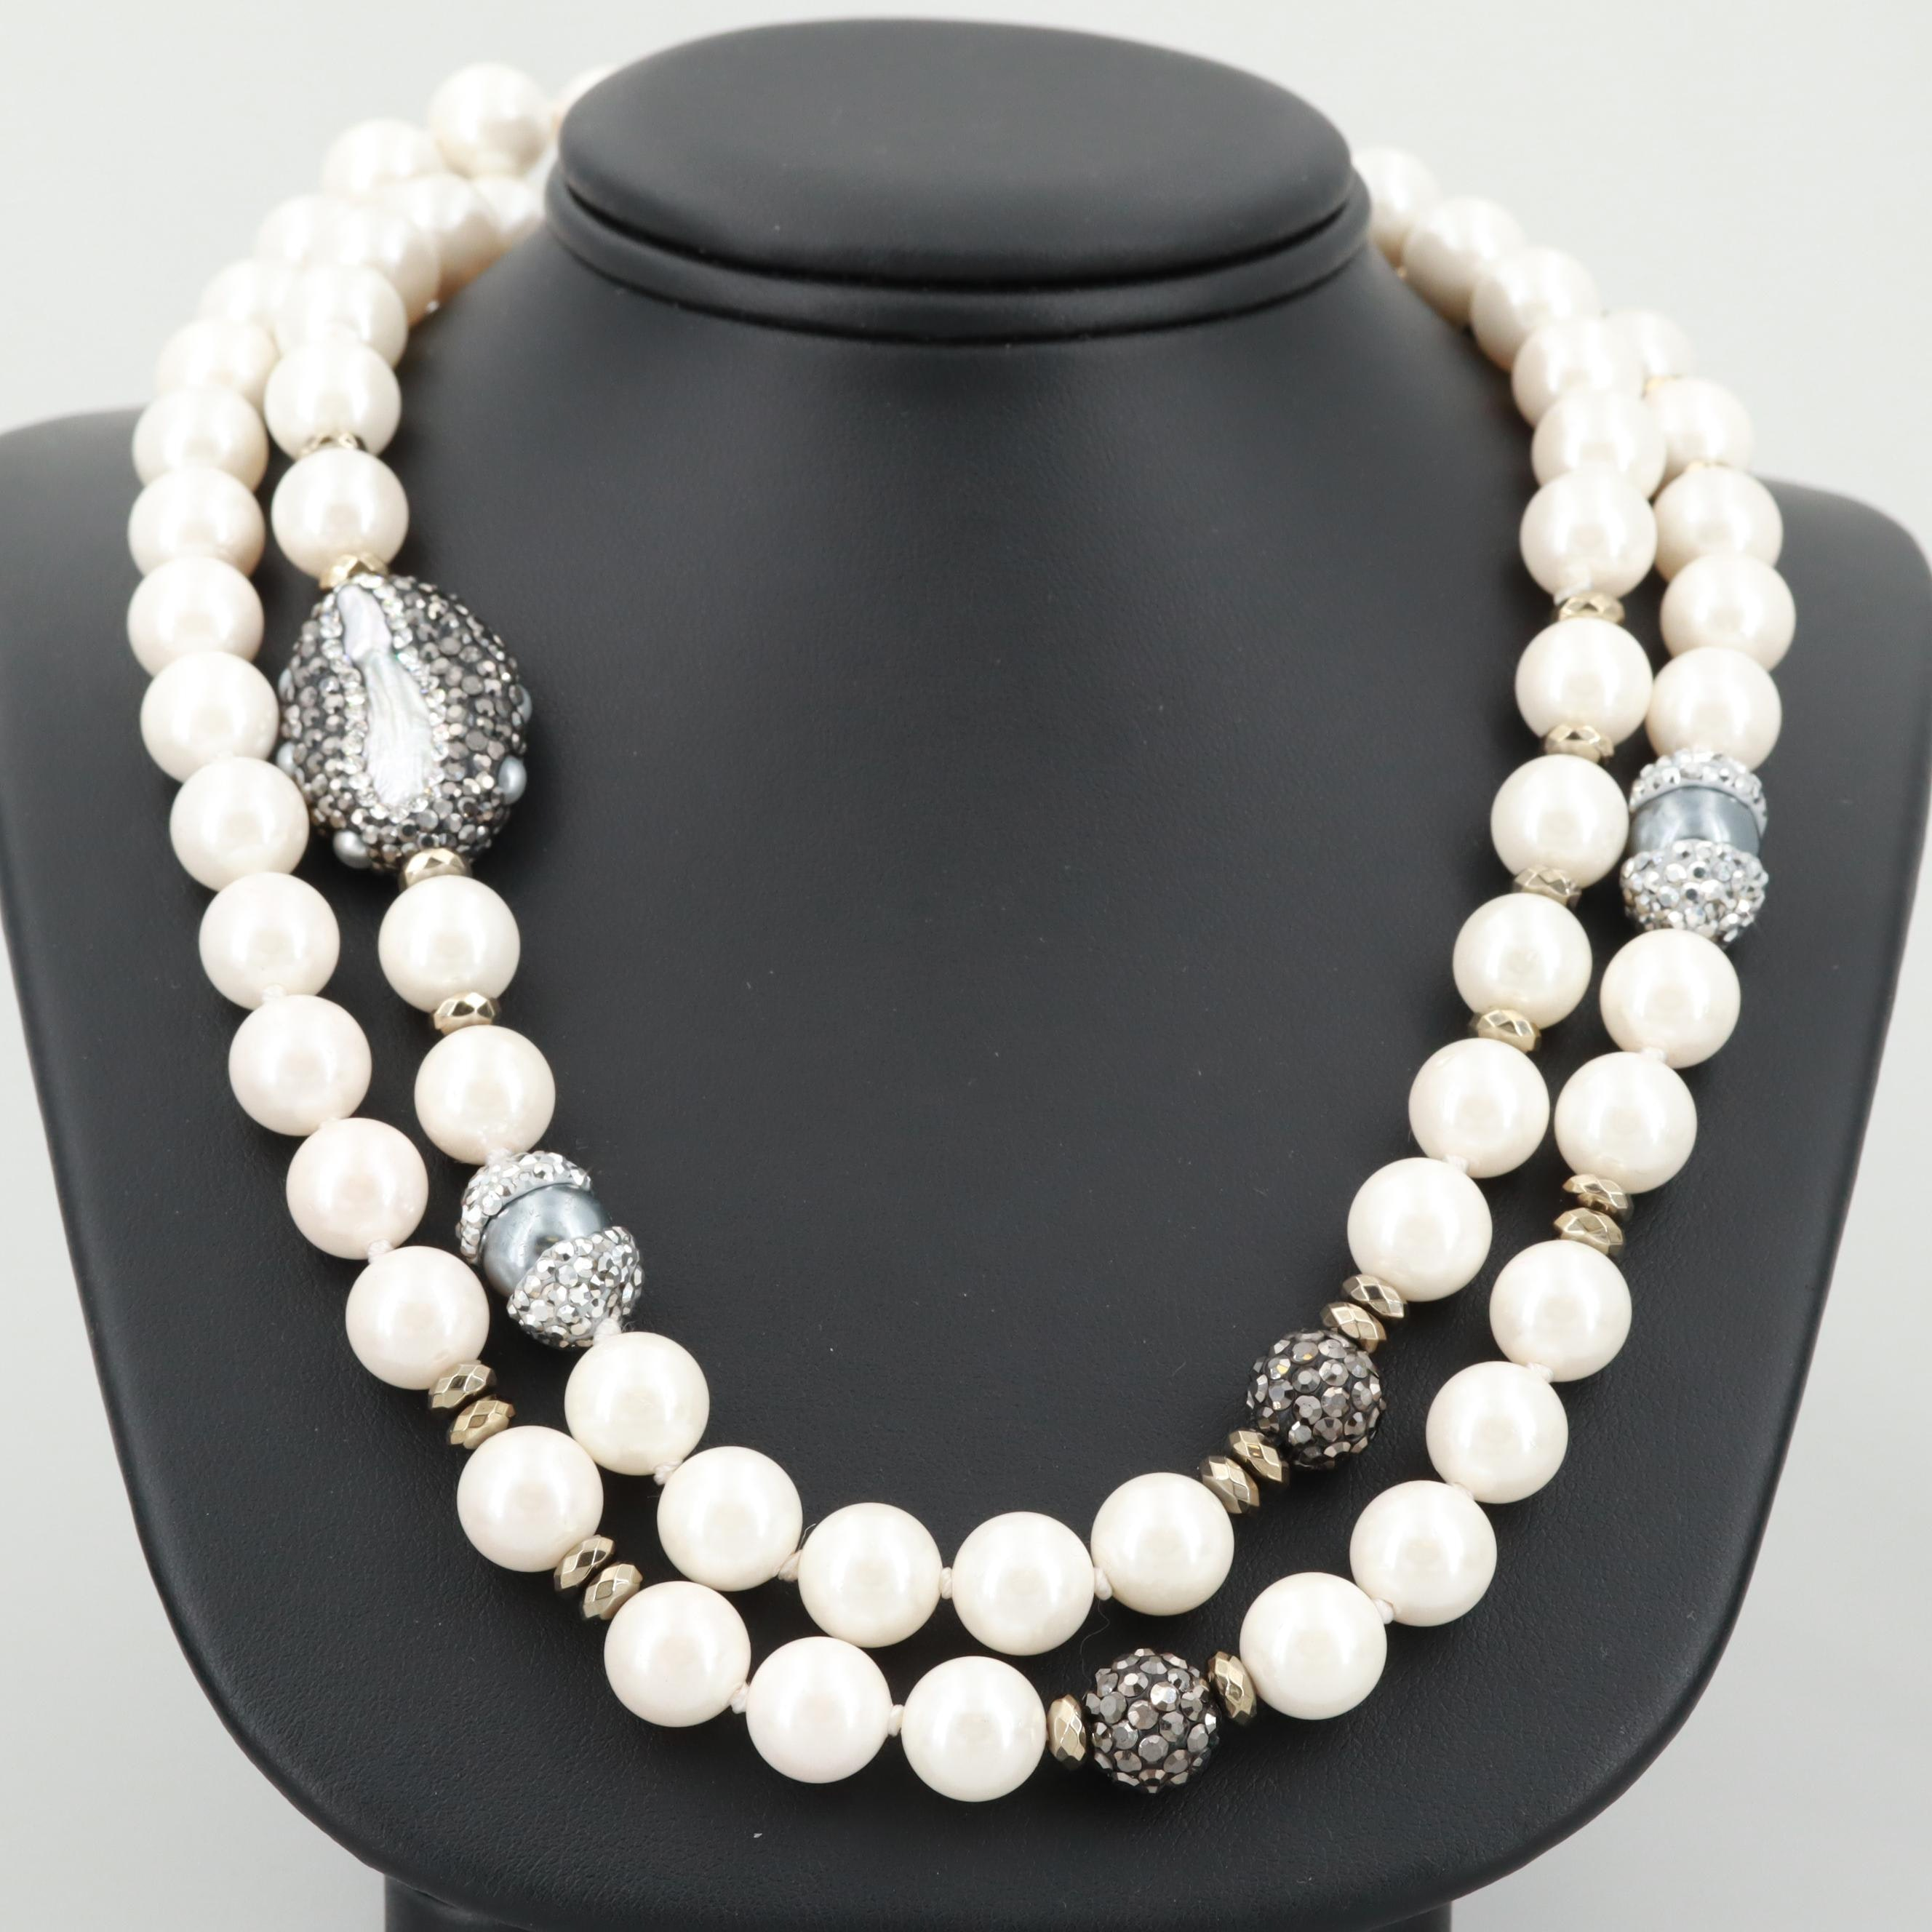 Silver and Gold Tone Imitation Cultured Pearl and Marcasite Endless Necklace